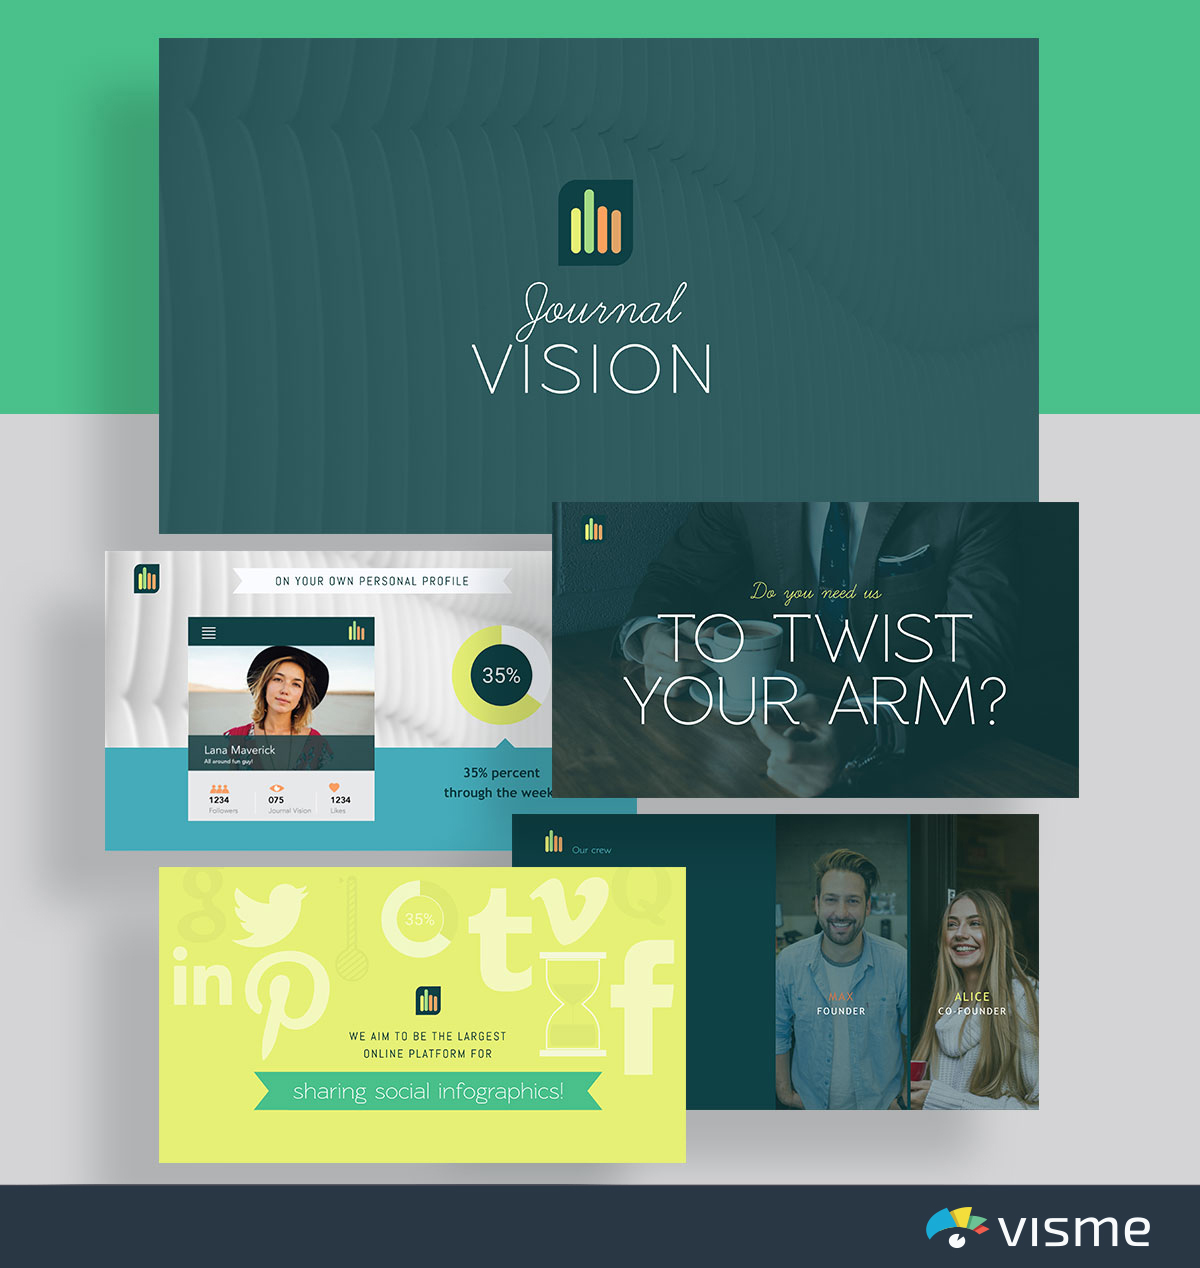 presentation slides - journalvision biogrify pitch deck template visme